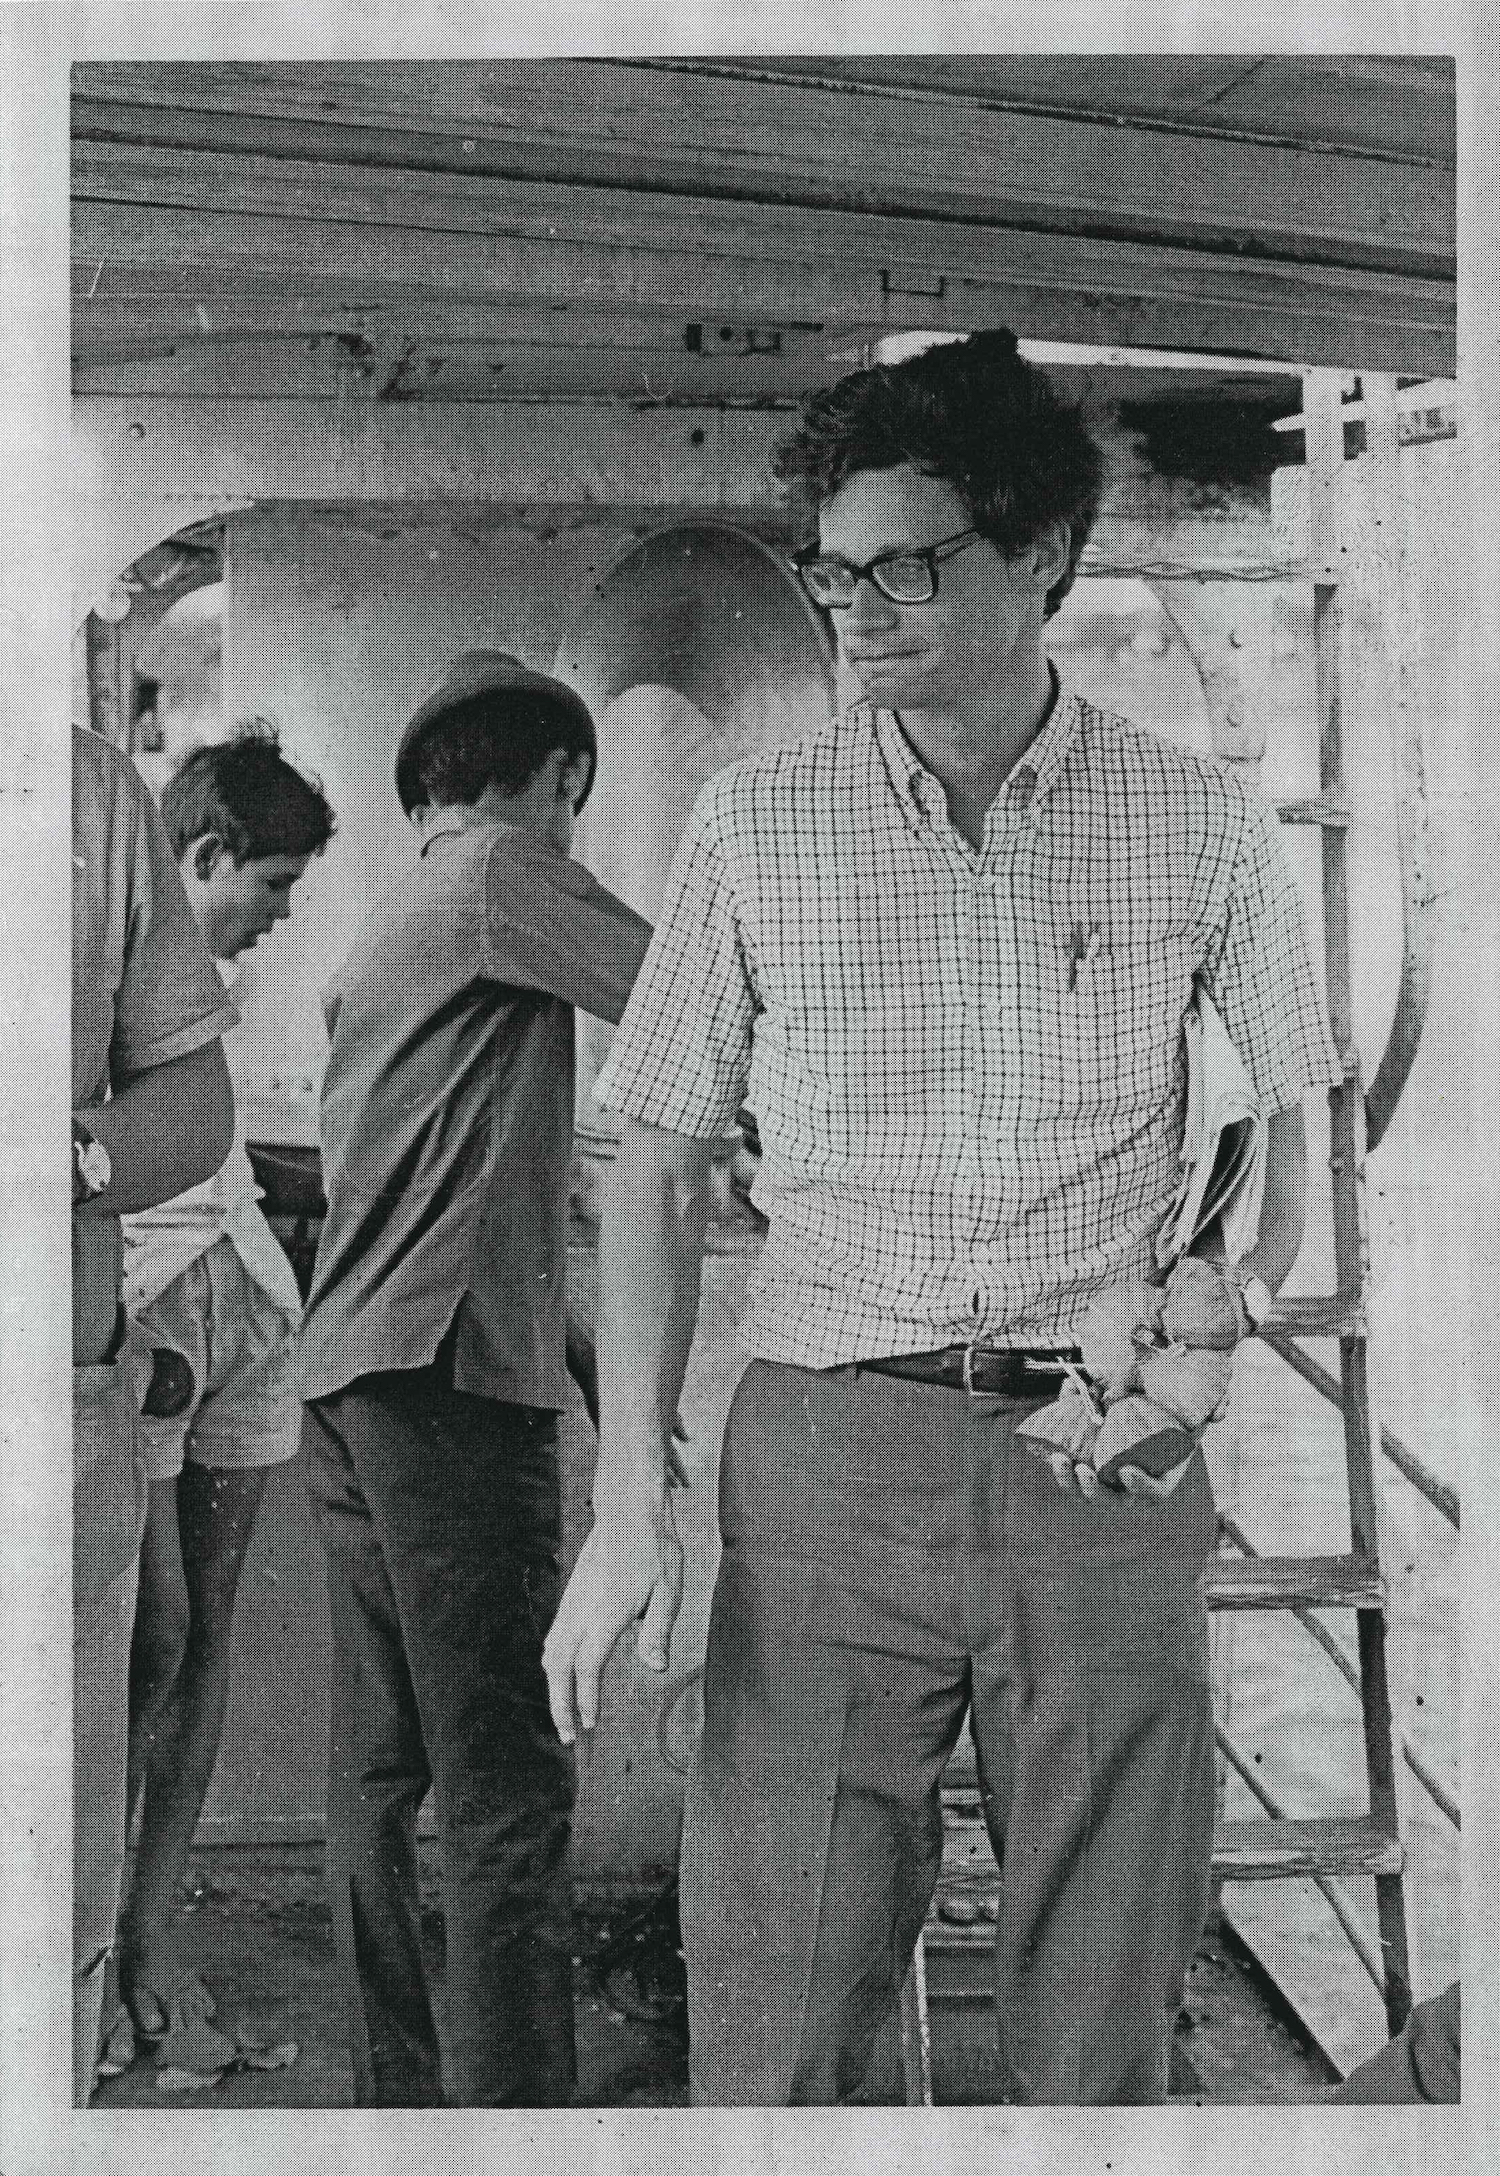 Dan Southerland pictured on a ferry crossing the Mekong River at Neak Leung, south of Phnom Penh, during the war. Southerland says he was staring at the bodies of massacred ethnic Vietnamese civilians, who were often targeted by the Lon Nol regime for suspected sympathies toward the enemy.